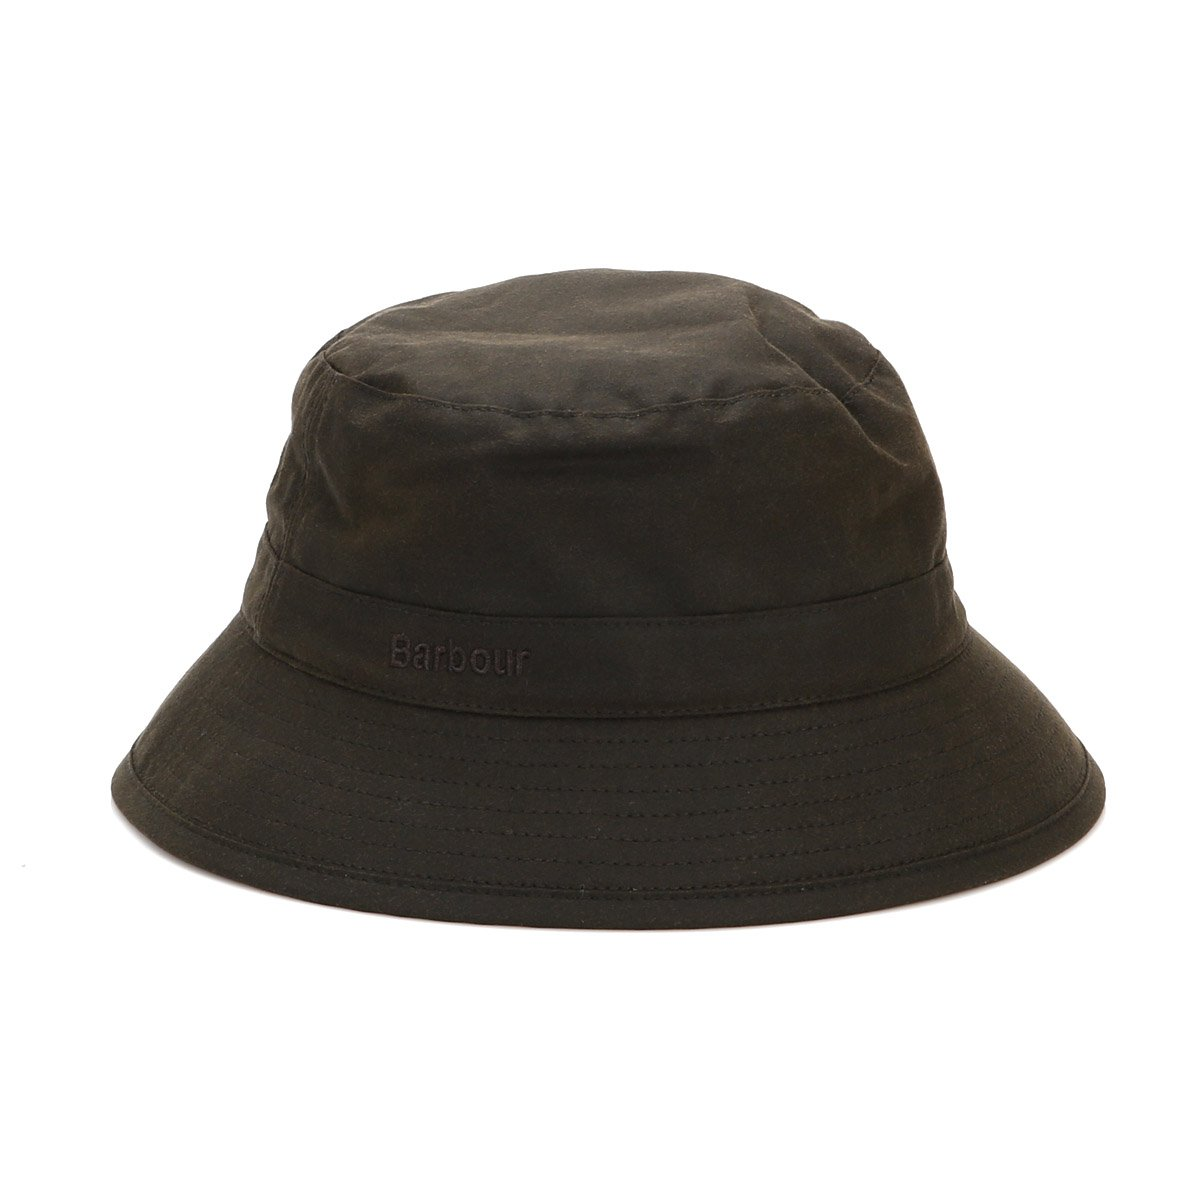 6724a8e99a642 Barbour Men s Waxed Sports Hat - Olive  Amazon.co.uk  Clothing